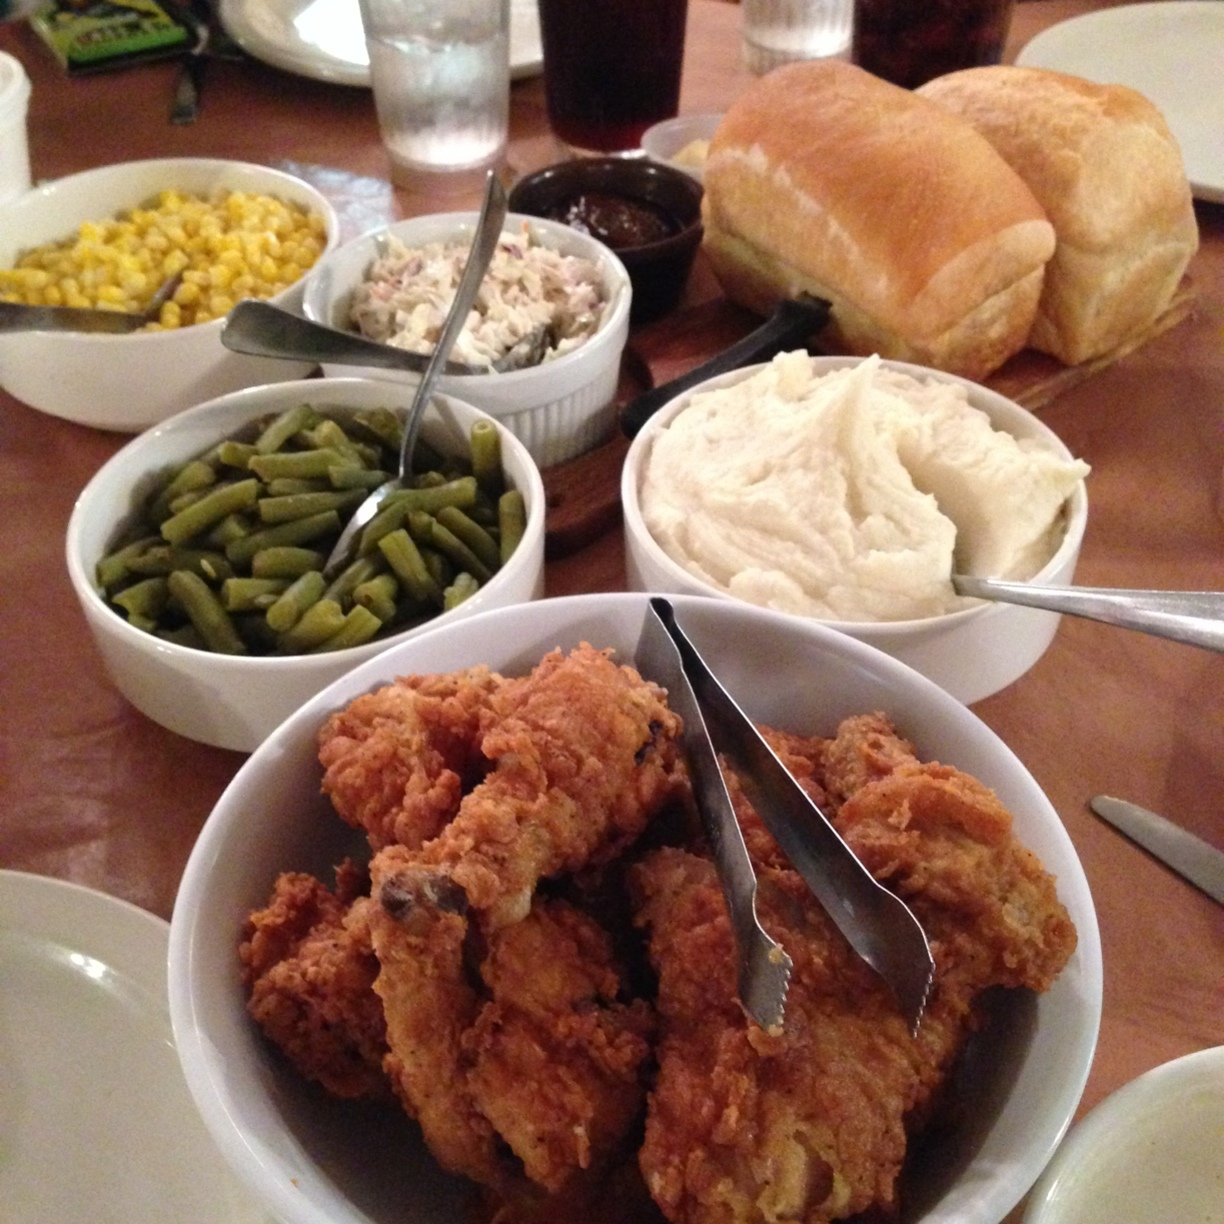 Fried chicken and all the fixings from Monte Ne Inn (photo via trover.com).